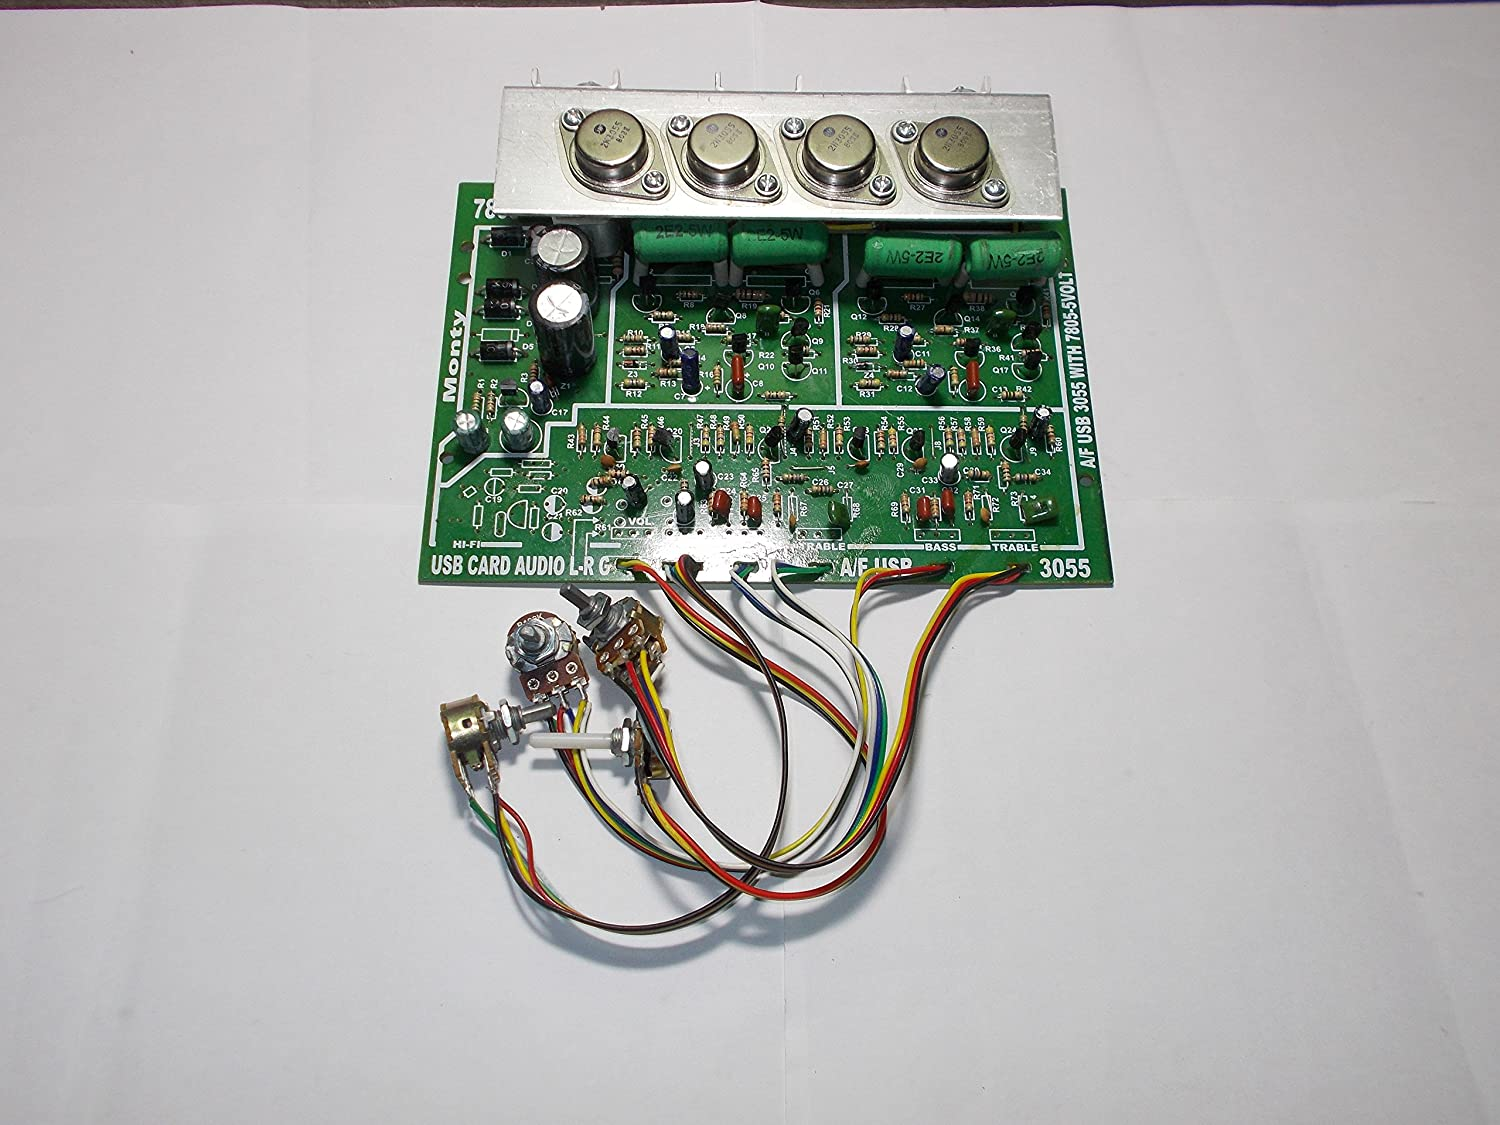 Attractive Antry Amplifier Circuit Pcb Image Collection - Wiring ...